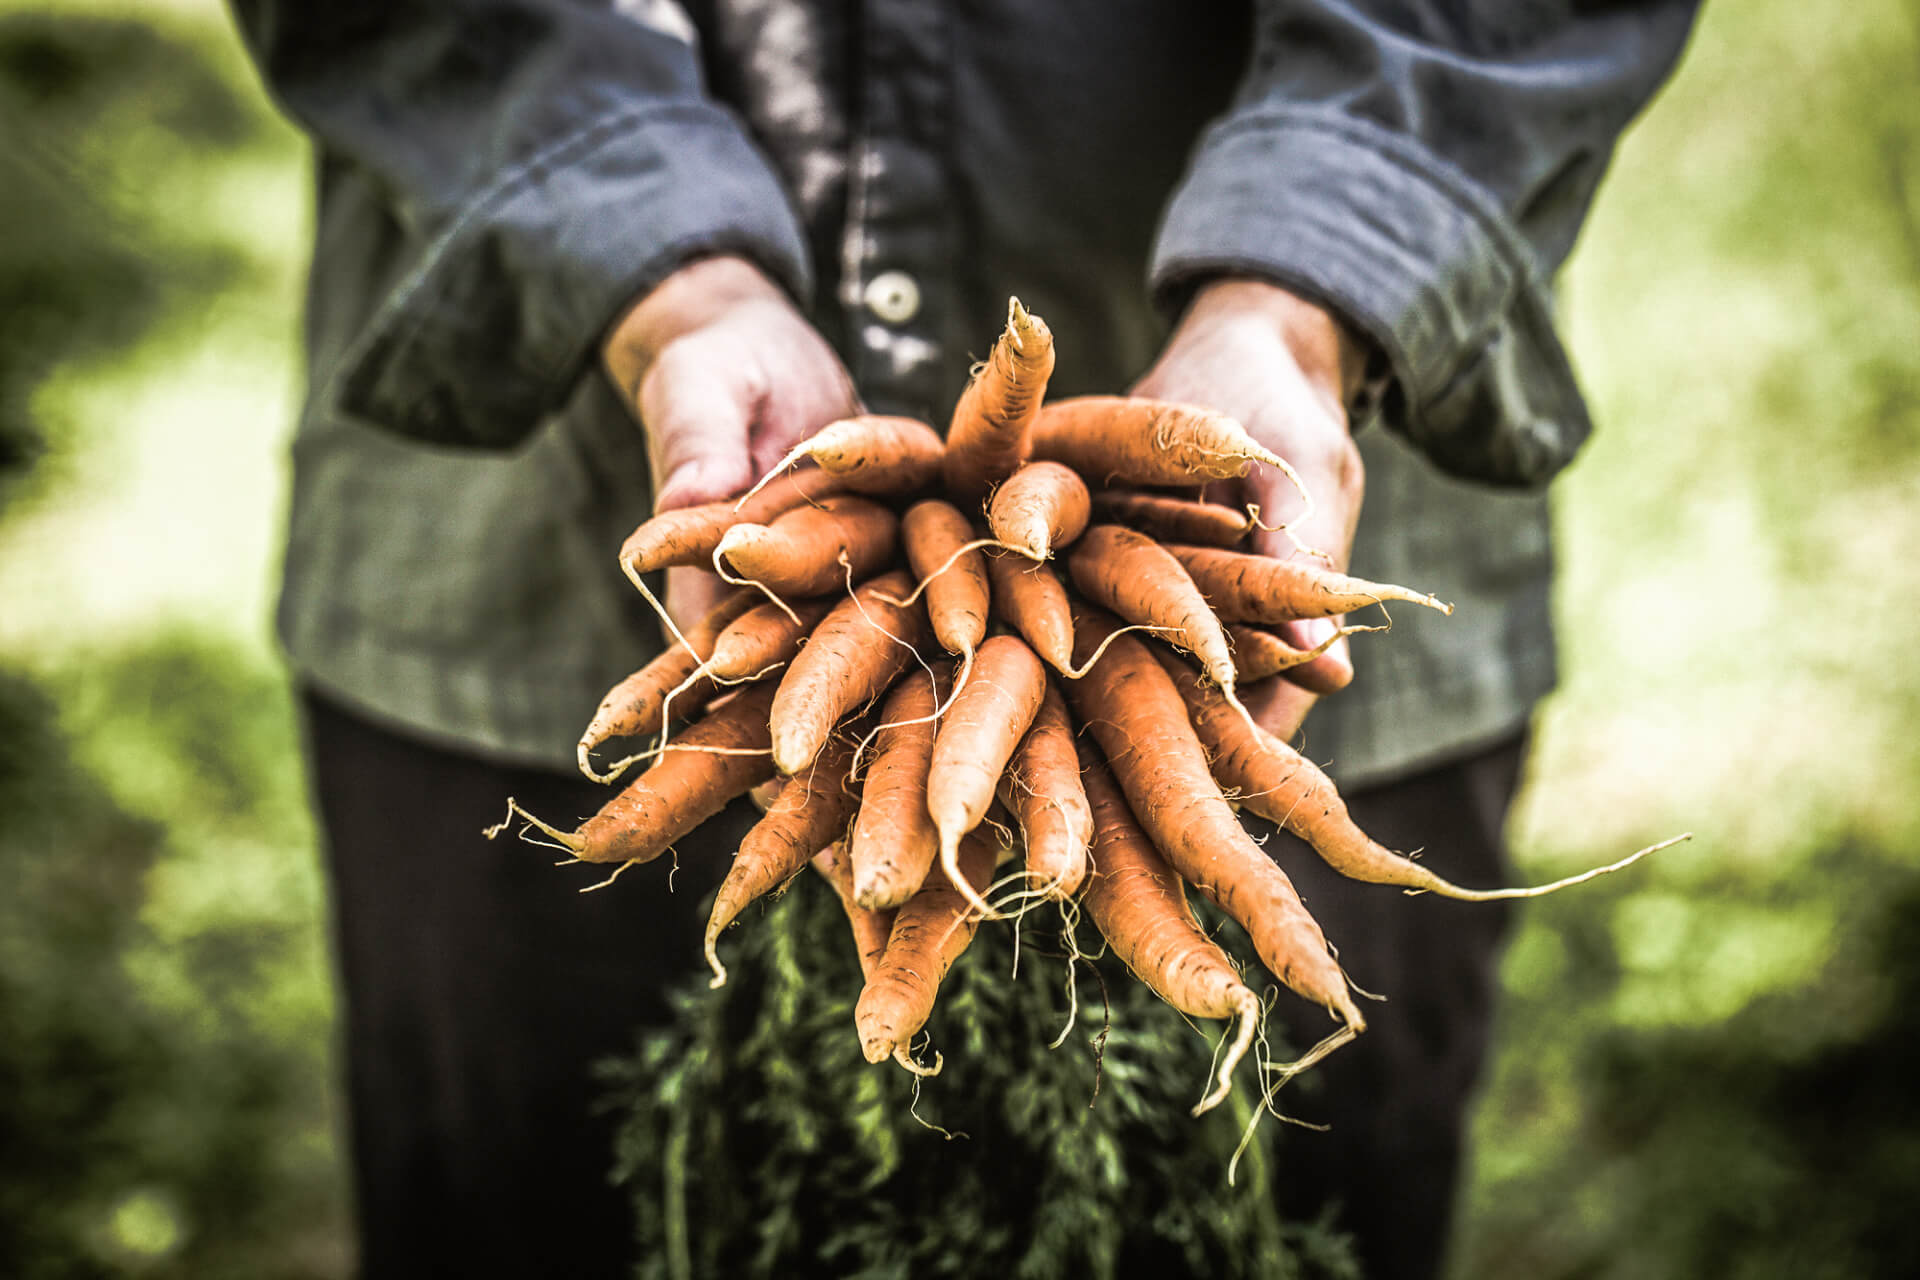 Hands holding a bunch of freshly picked carrots, the focus topic for the World Carrot Museum